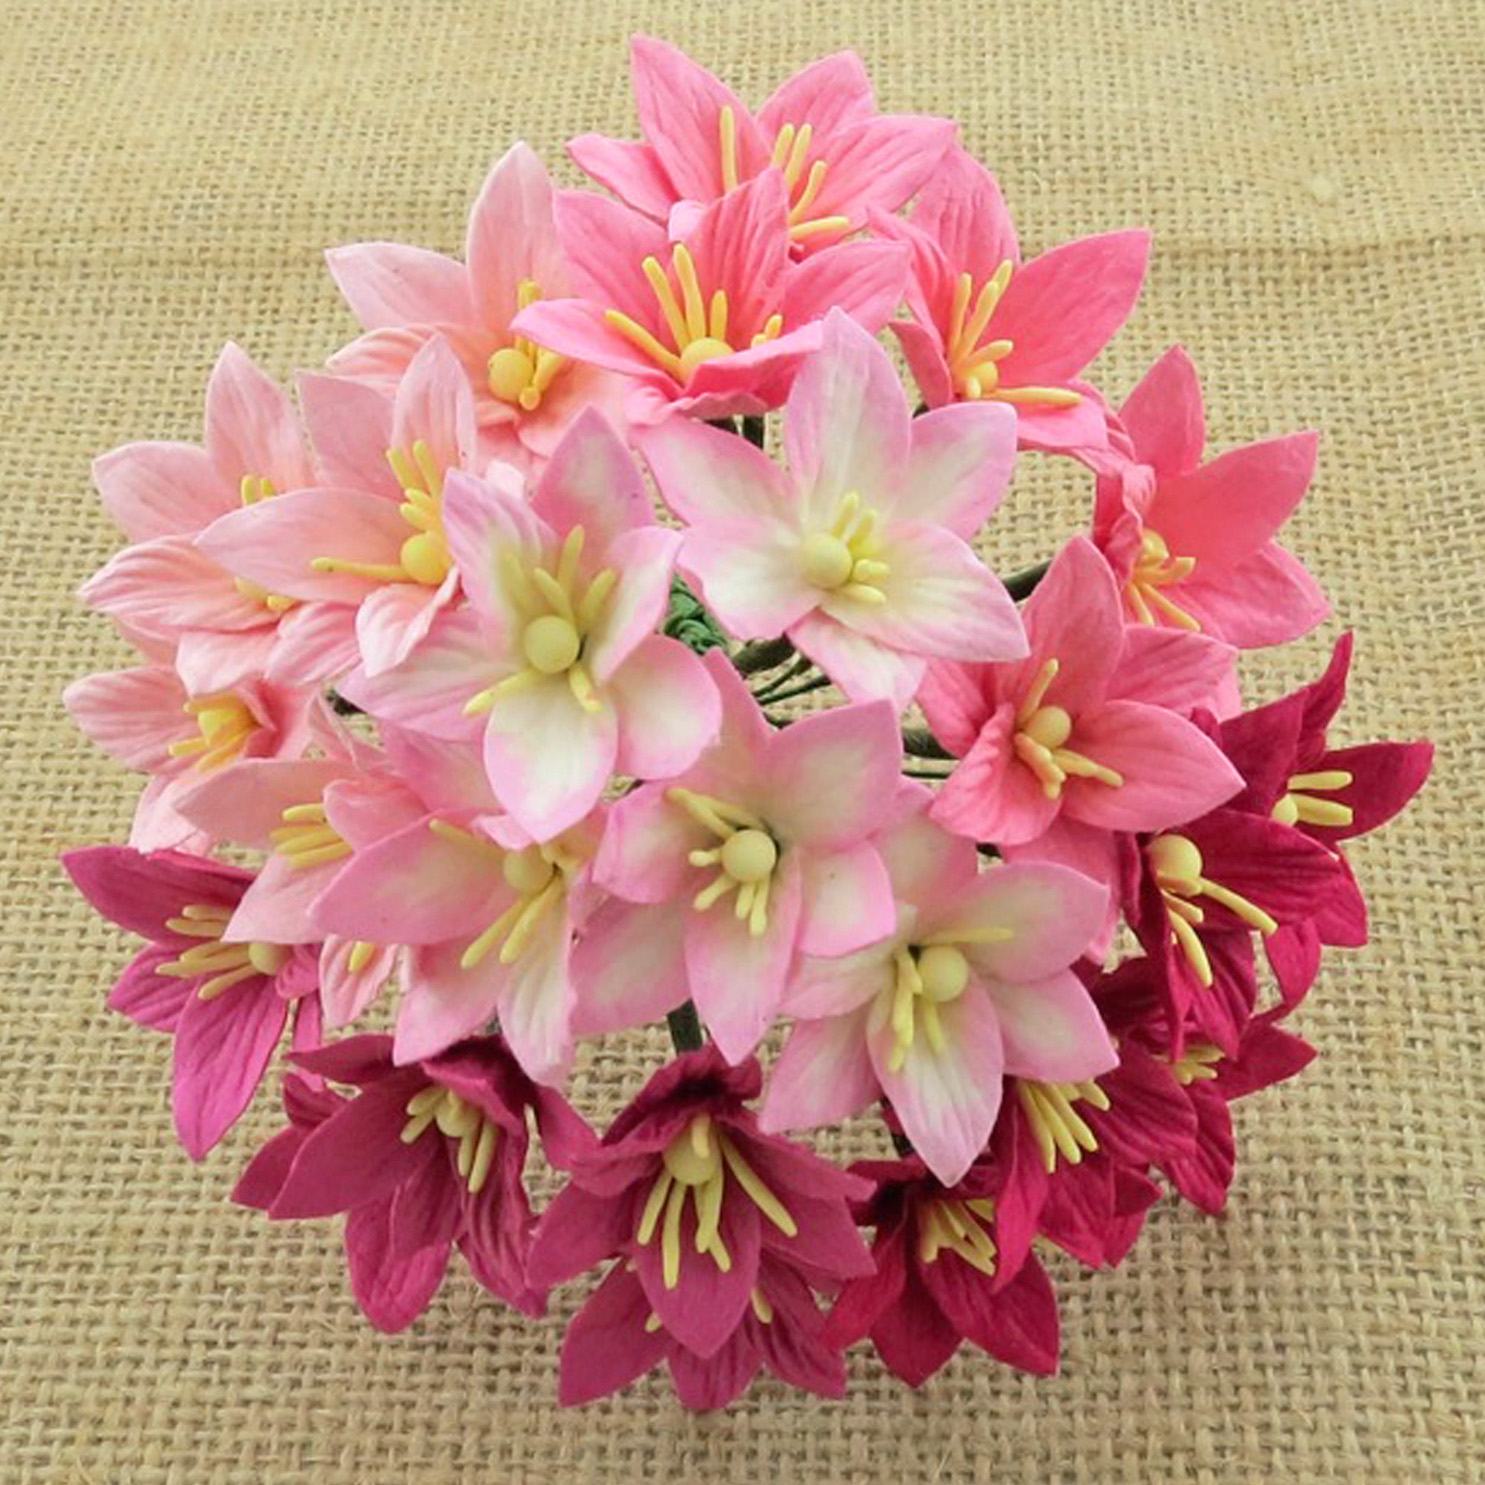 50 MIXED PINK MULBERRY PAPER LILY FLOWERS - 5 COLOR